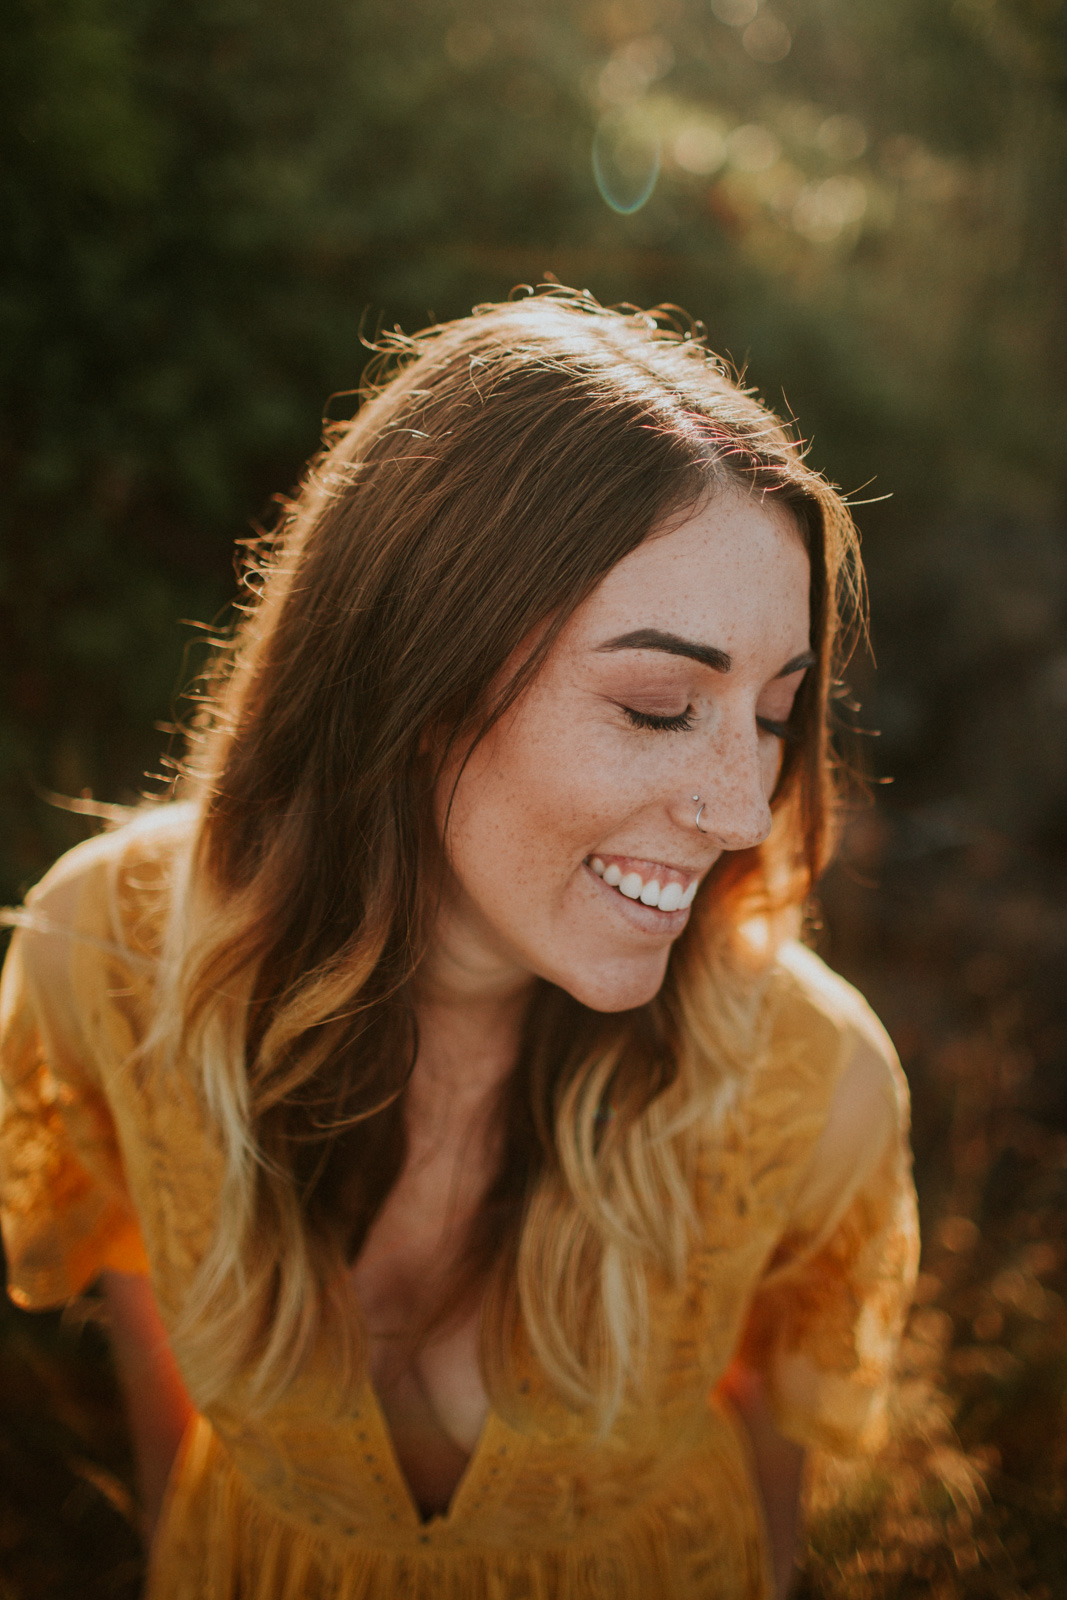 photo of woman with nose ring laughing by Cassandra Casley